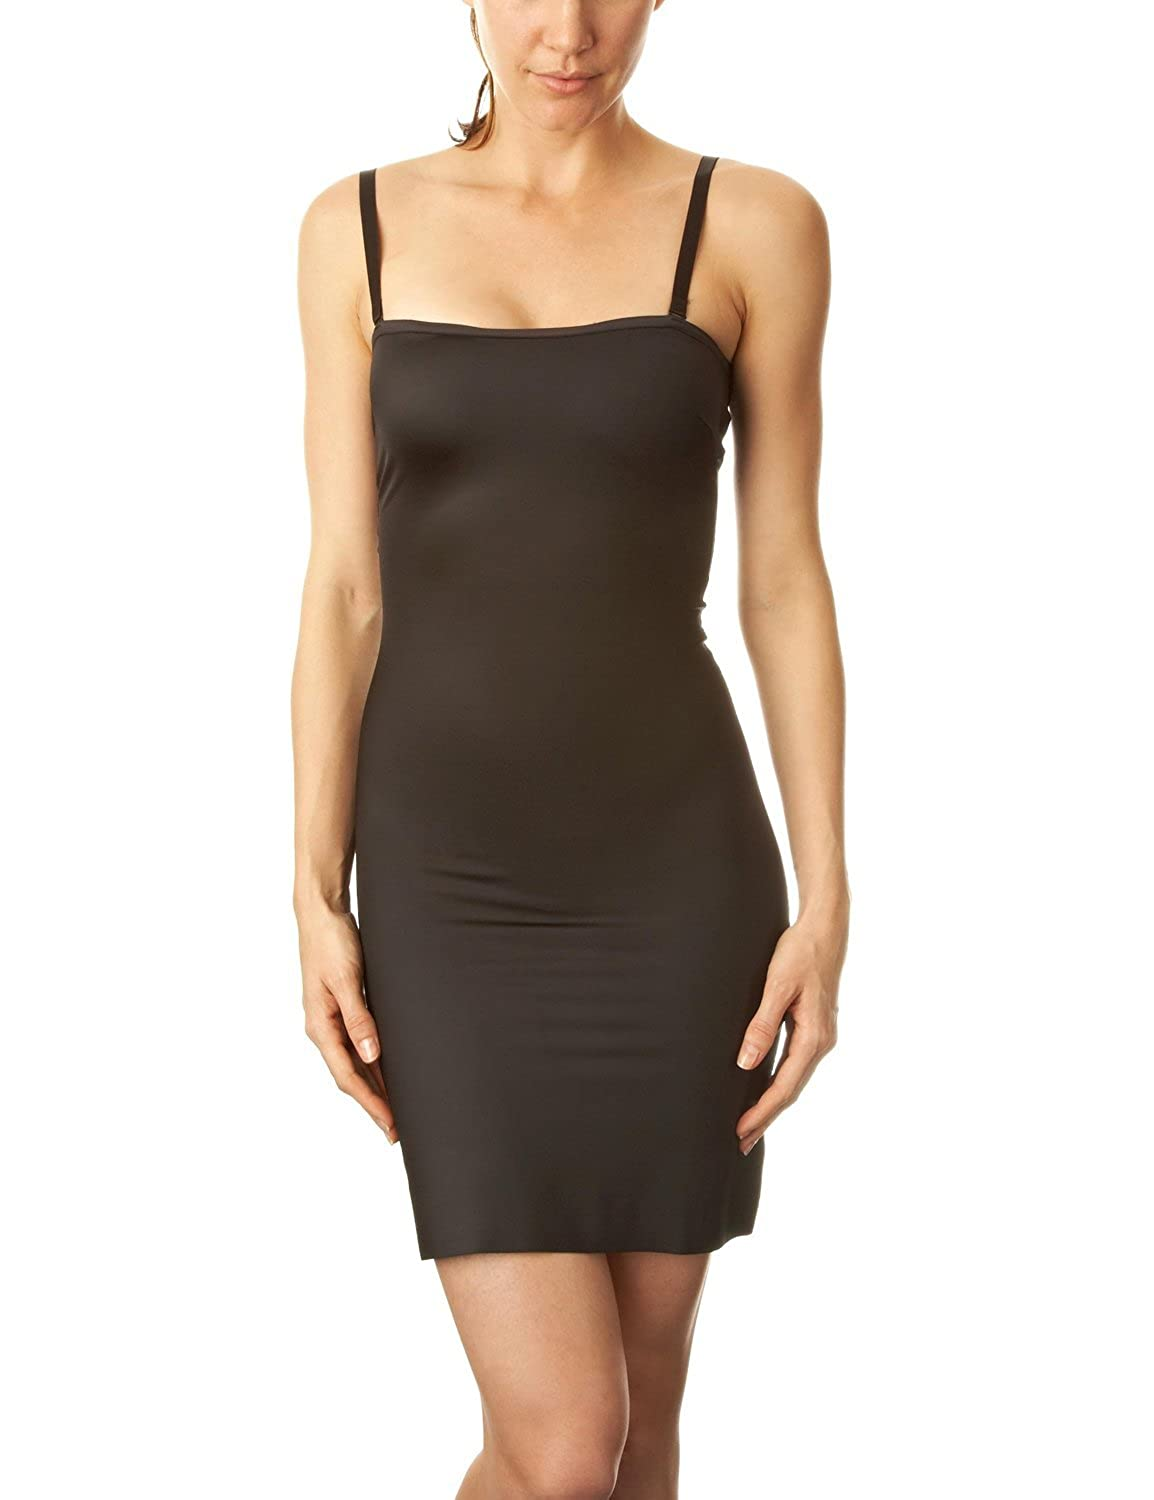 SPANX `Slim Cognito` Full Slip Dress (392) - Figurformendes Shape Unterkleid